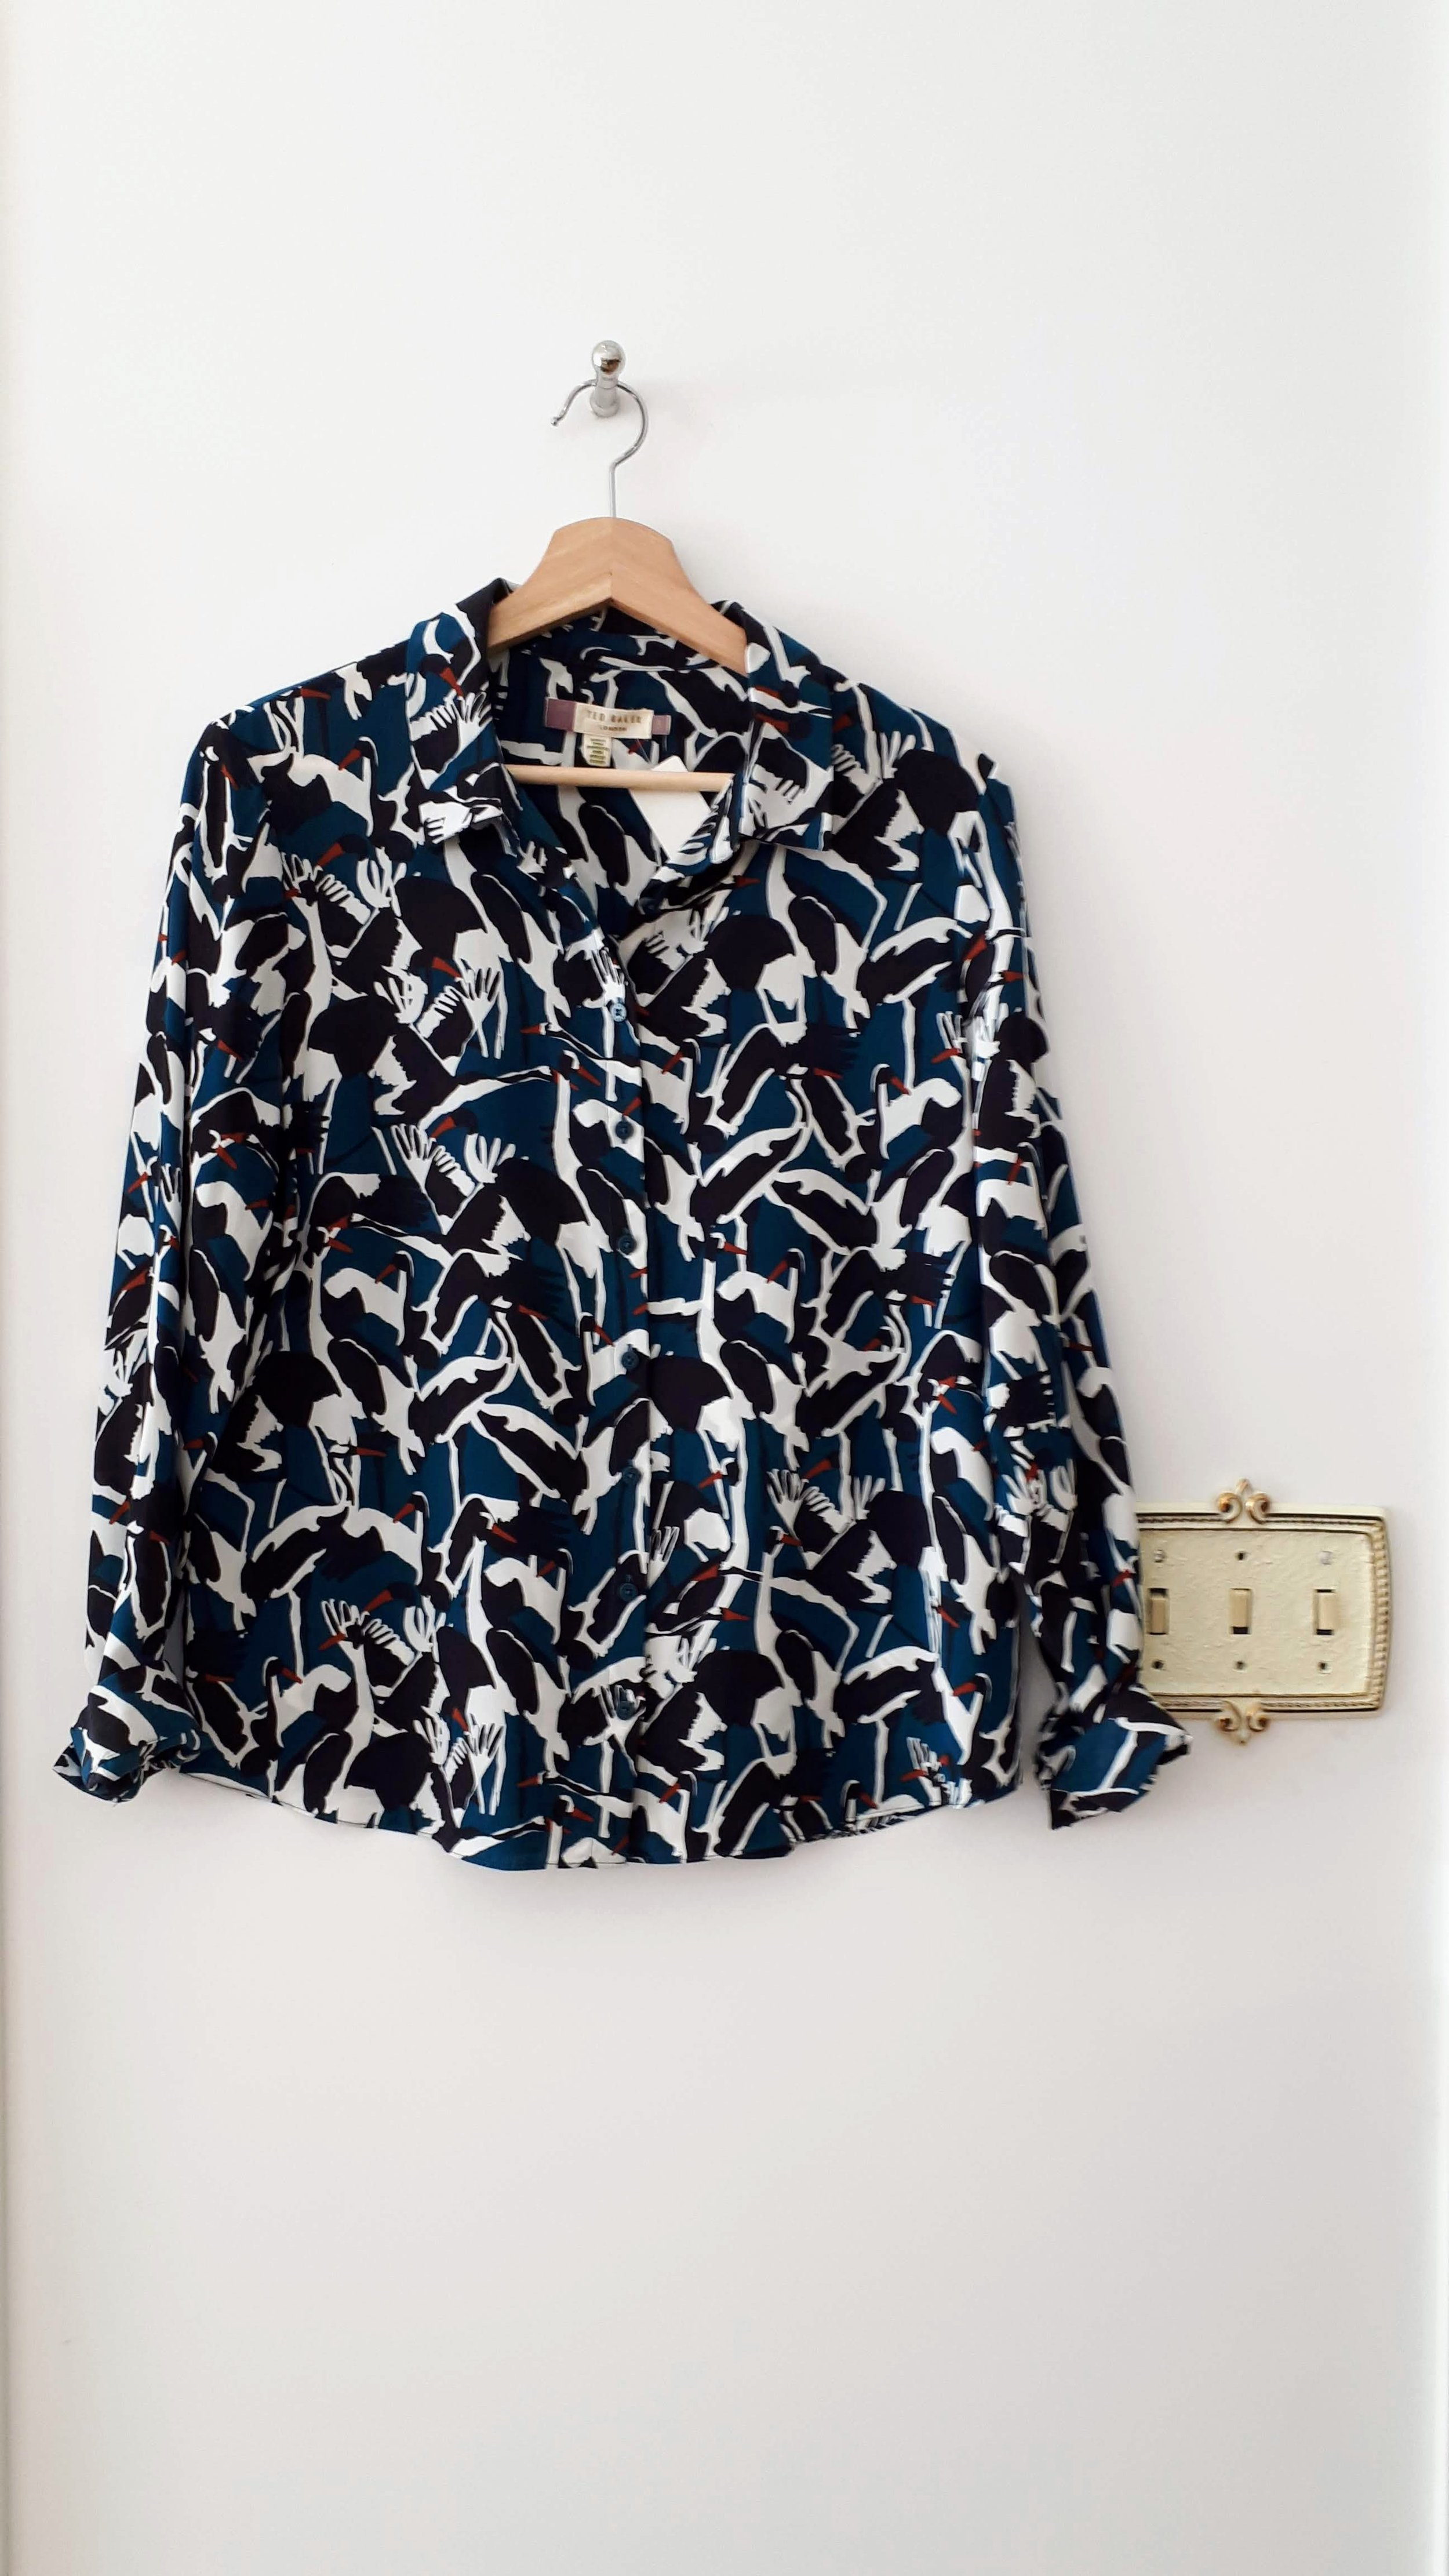 Ted Baker top; Size M, $58